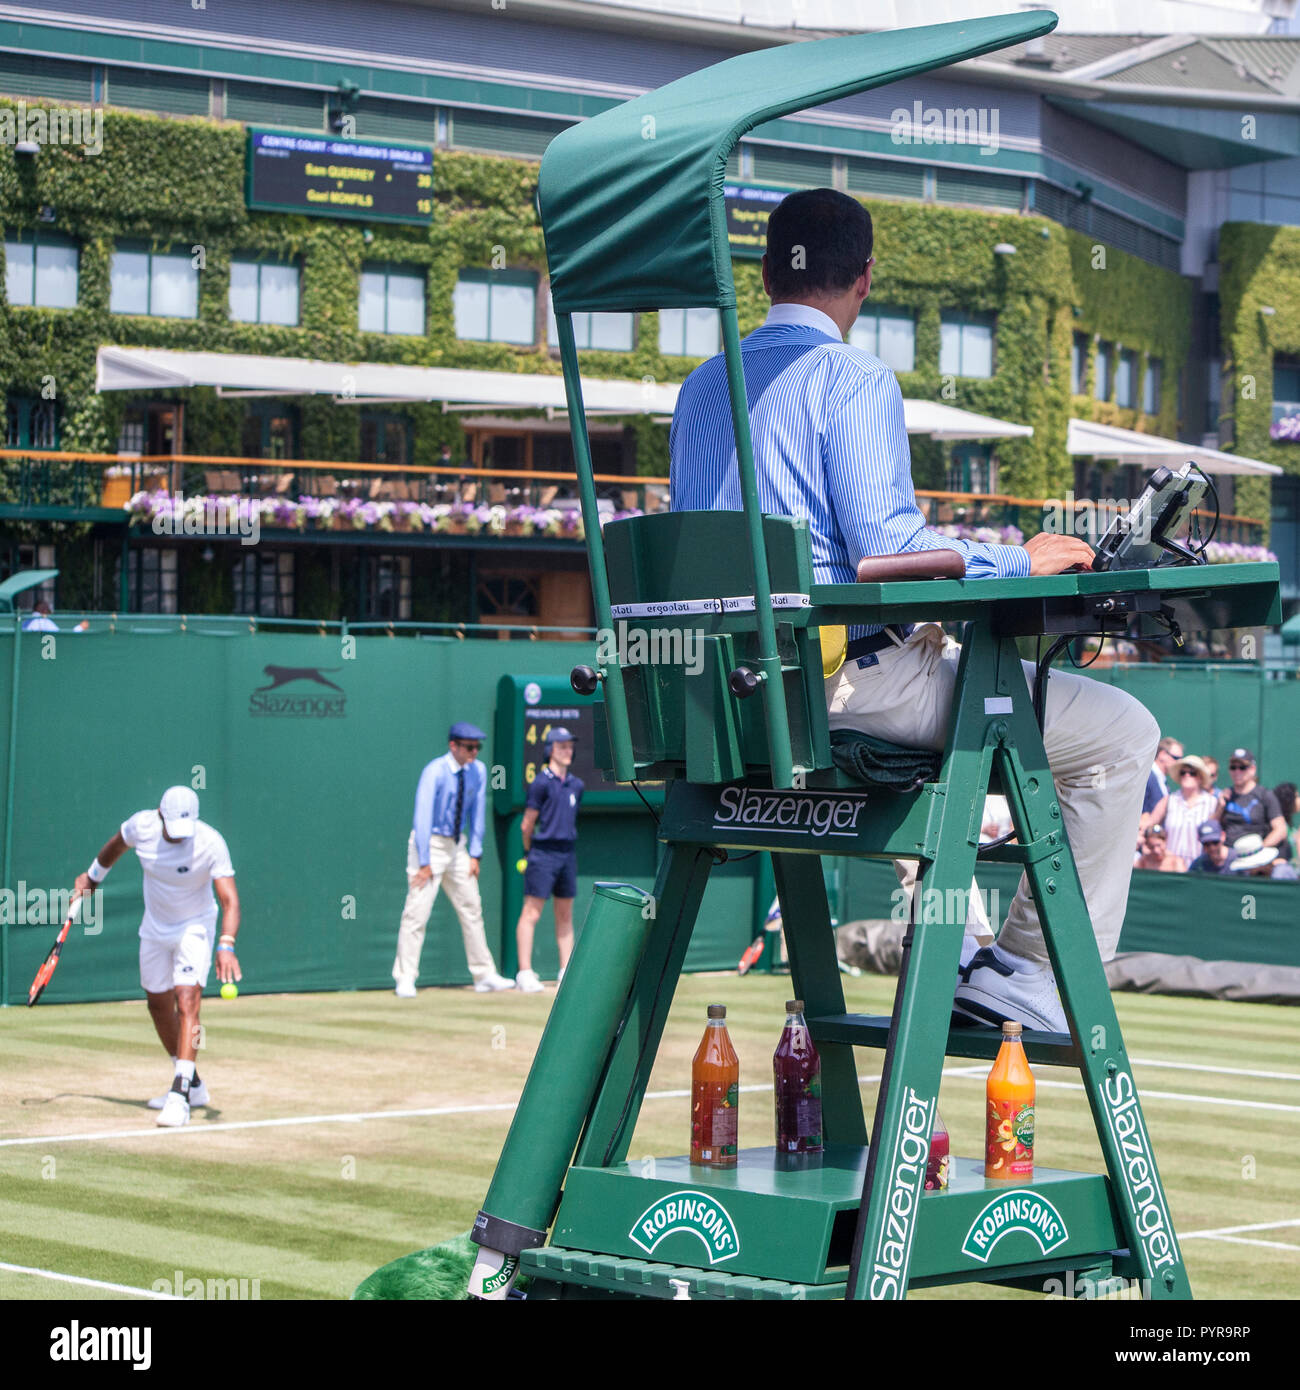 tennis umpire chair hire baby bouncy chairs clubs stock photos images alamy wimbledon match sitting in umpires above the players image